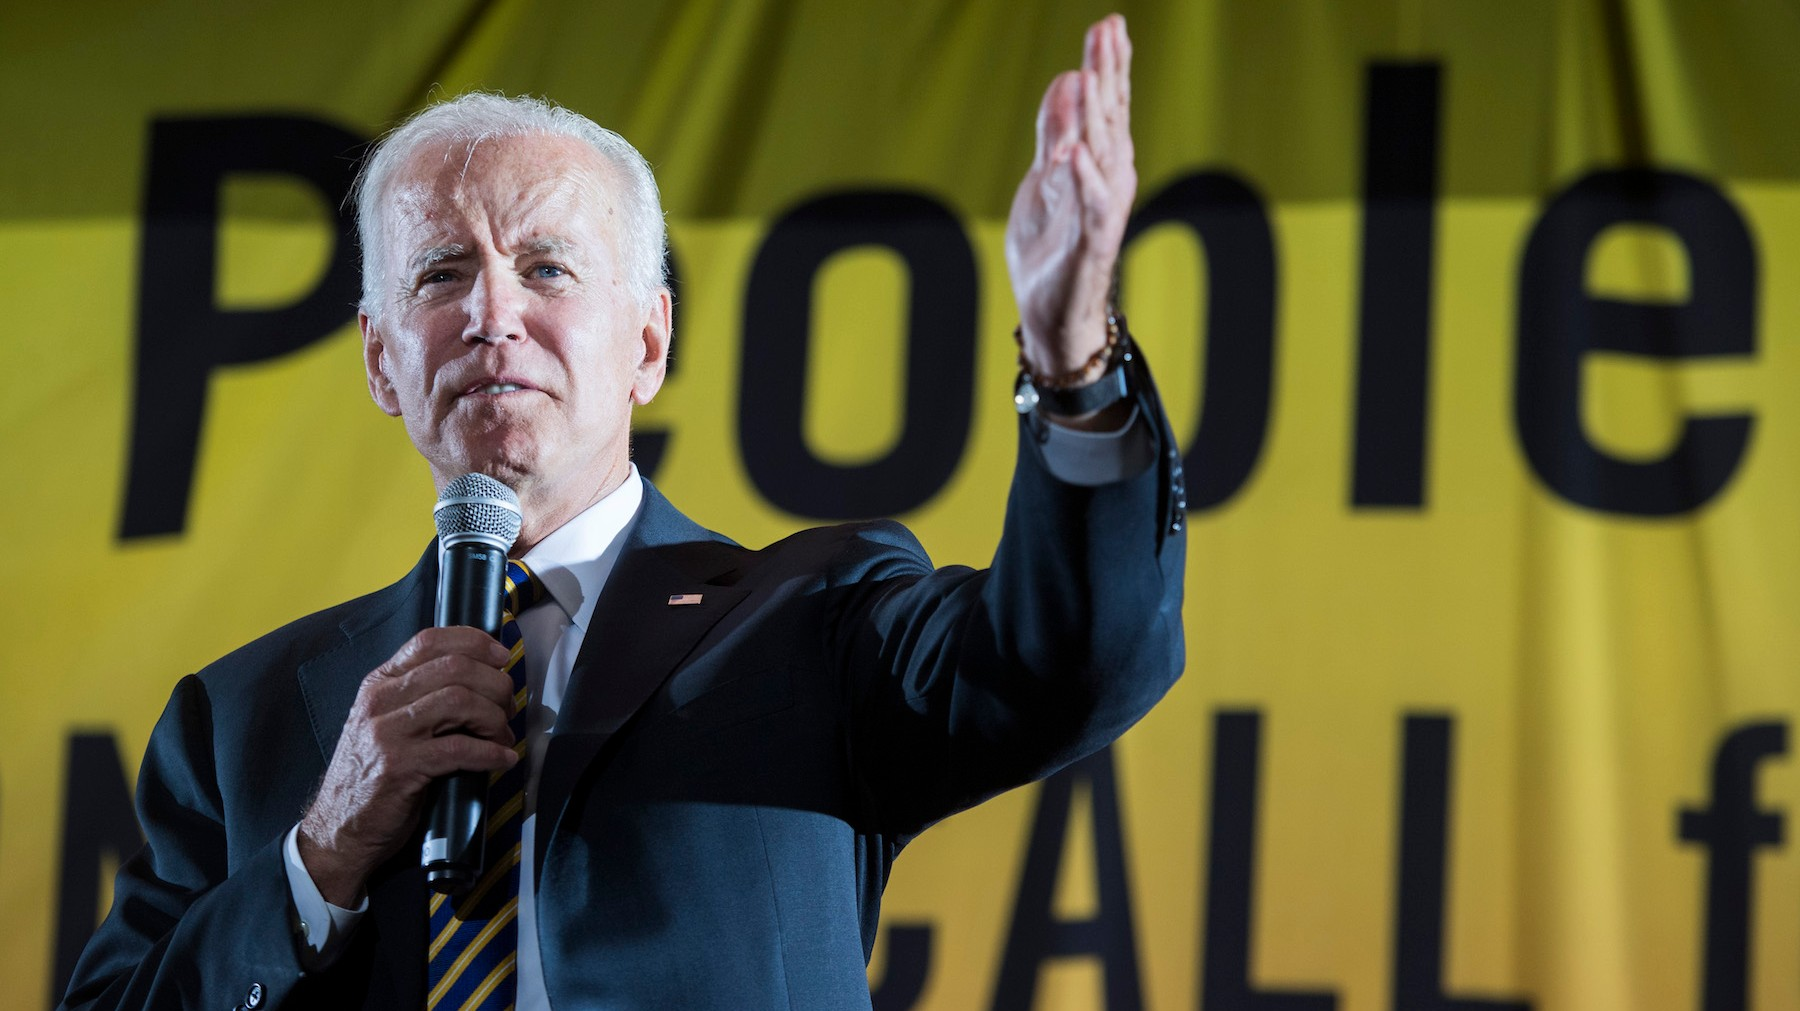 Biden Says Hey Dems Let's Calm Down about the Whole Revolution Thing